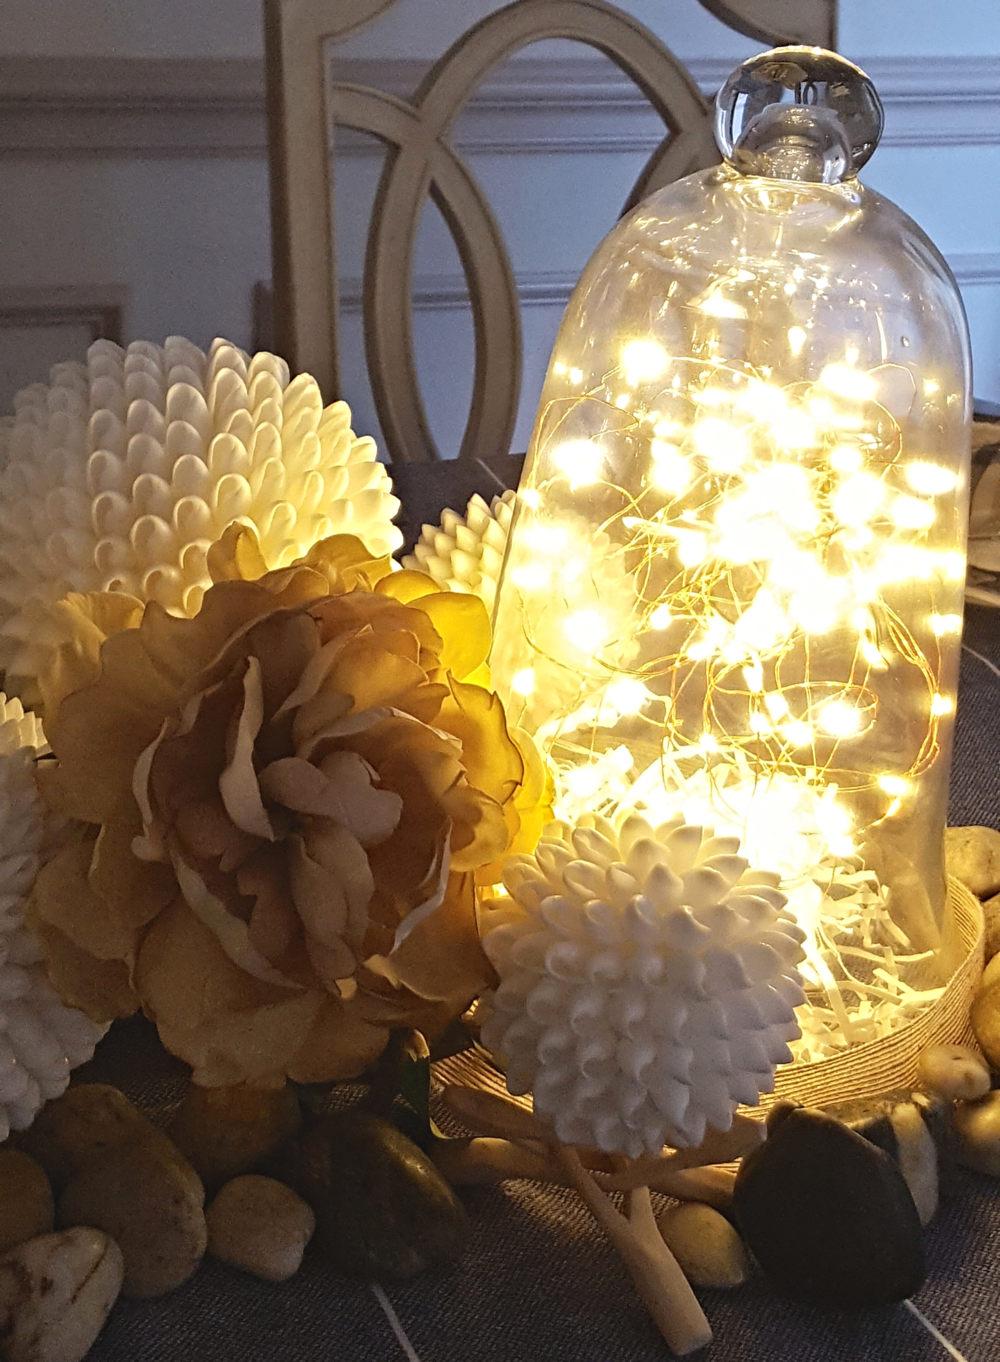 Glass Cloche with LED Fairy Lights - lifewithstyle.co